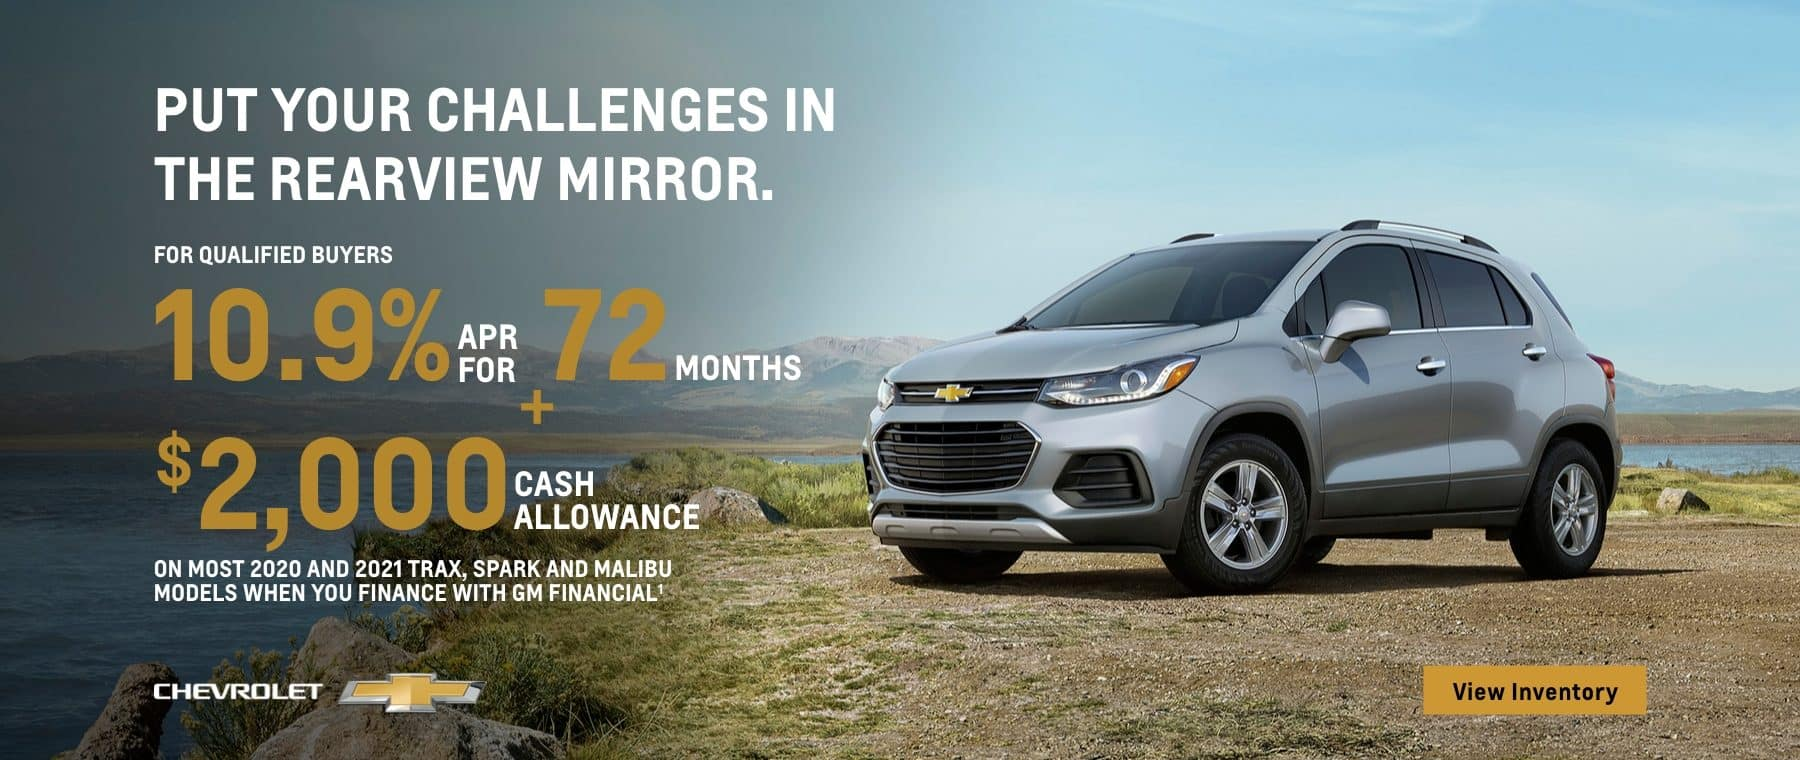 Put your challenges in the review mirror